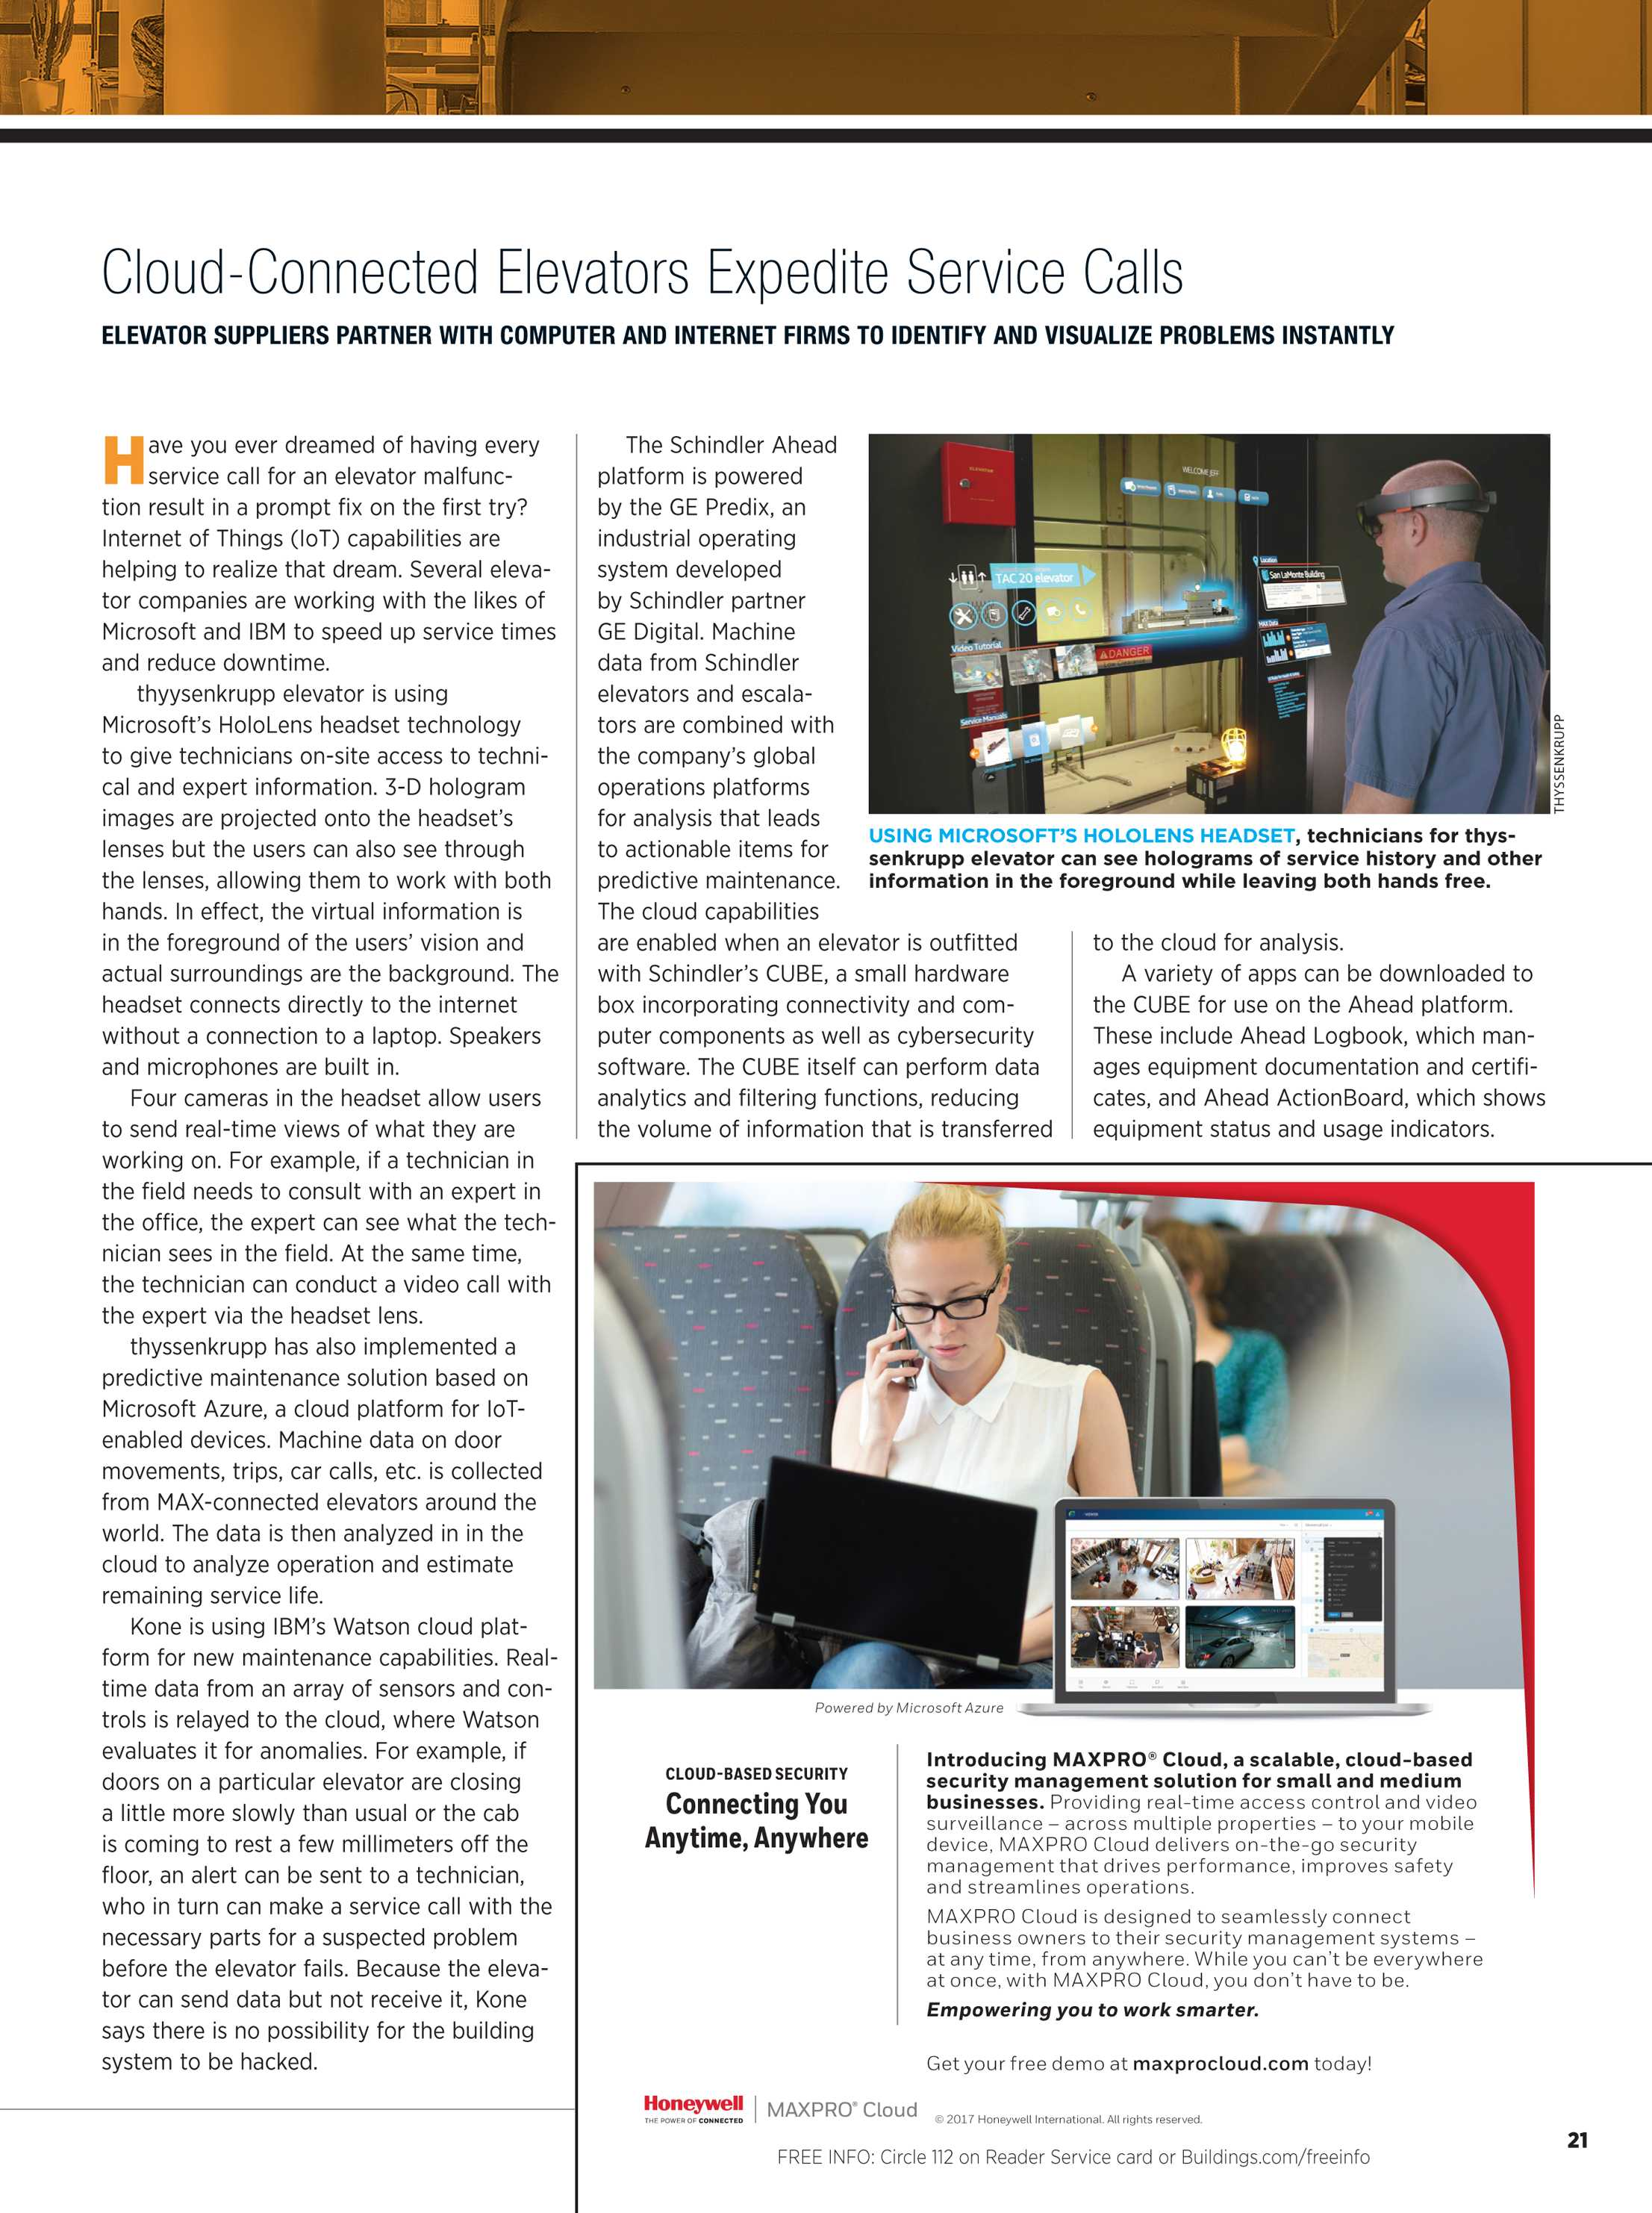 Buildings Magazine - September 2017 - page 21